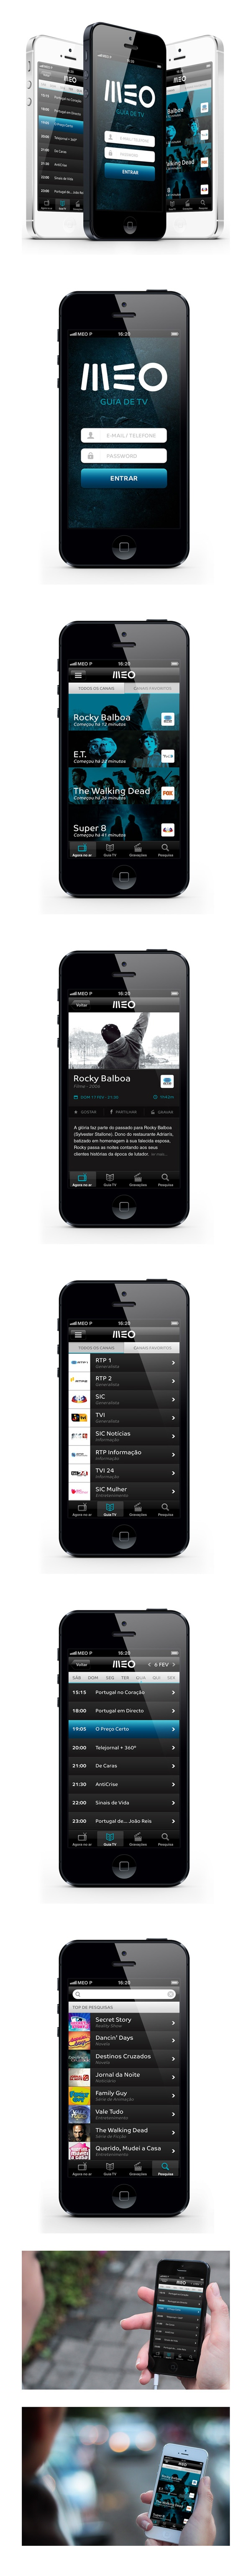 MEO Tv Guide App Concept by Guilherme Costa, via Behance *** Concept iPhone APP of a TV Guide service for MEO, a portuguese IPTV operator with more than 750.000 clients